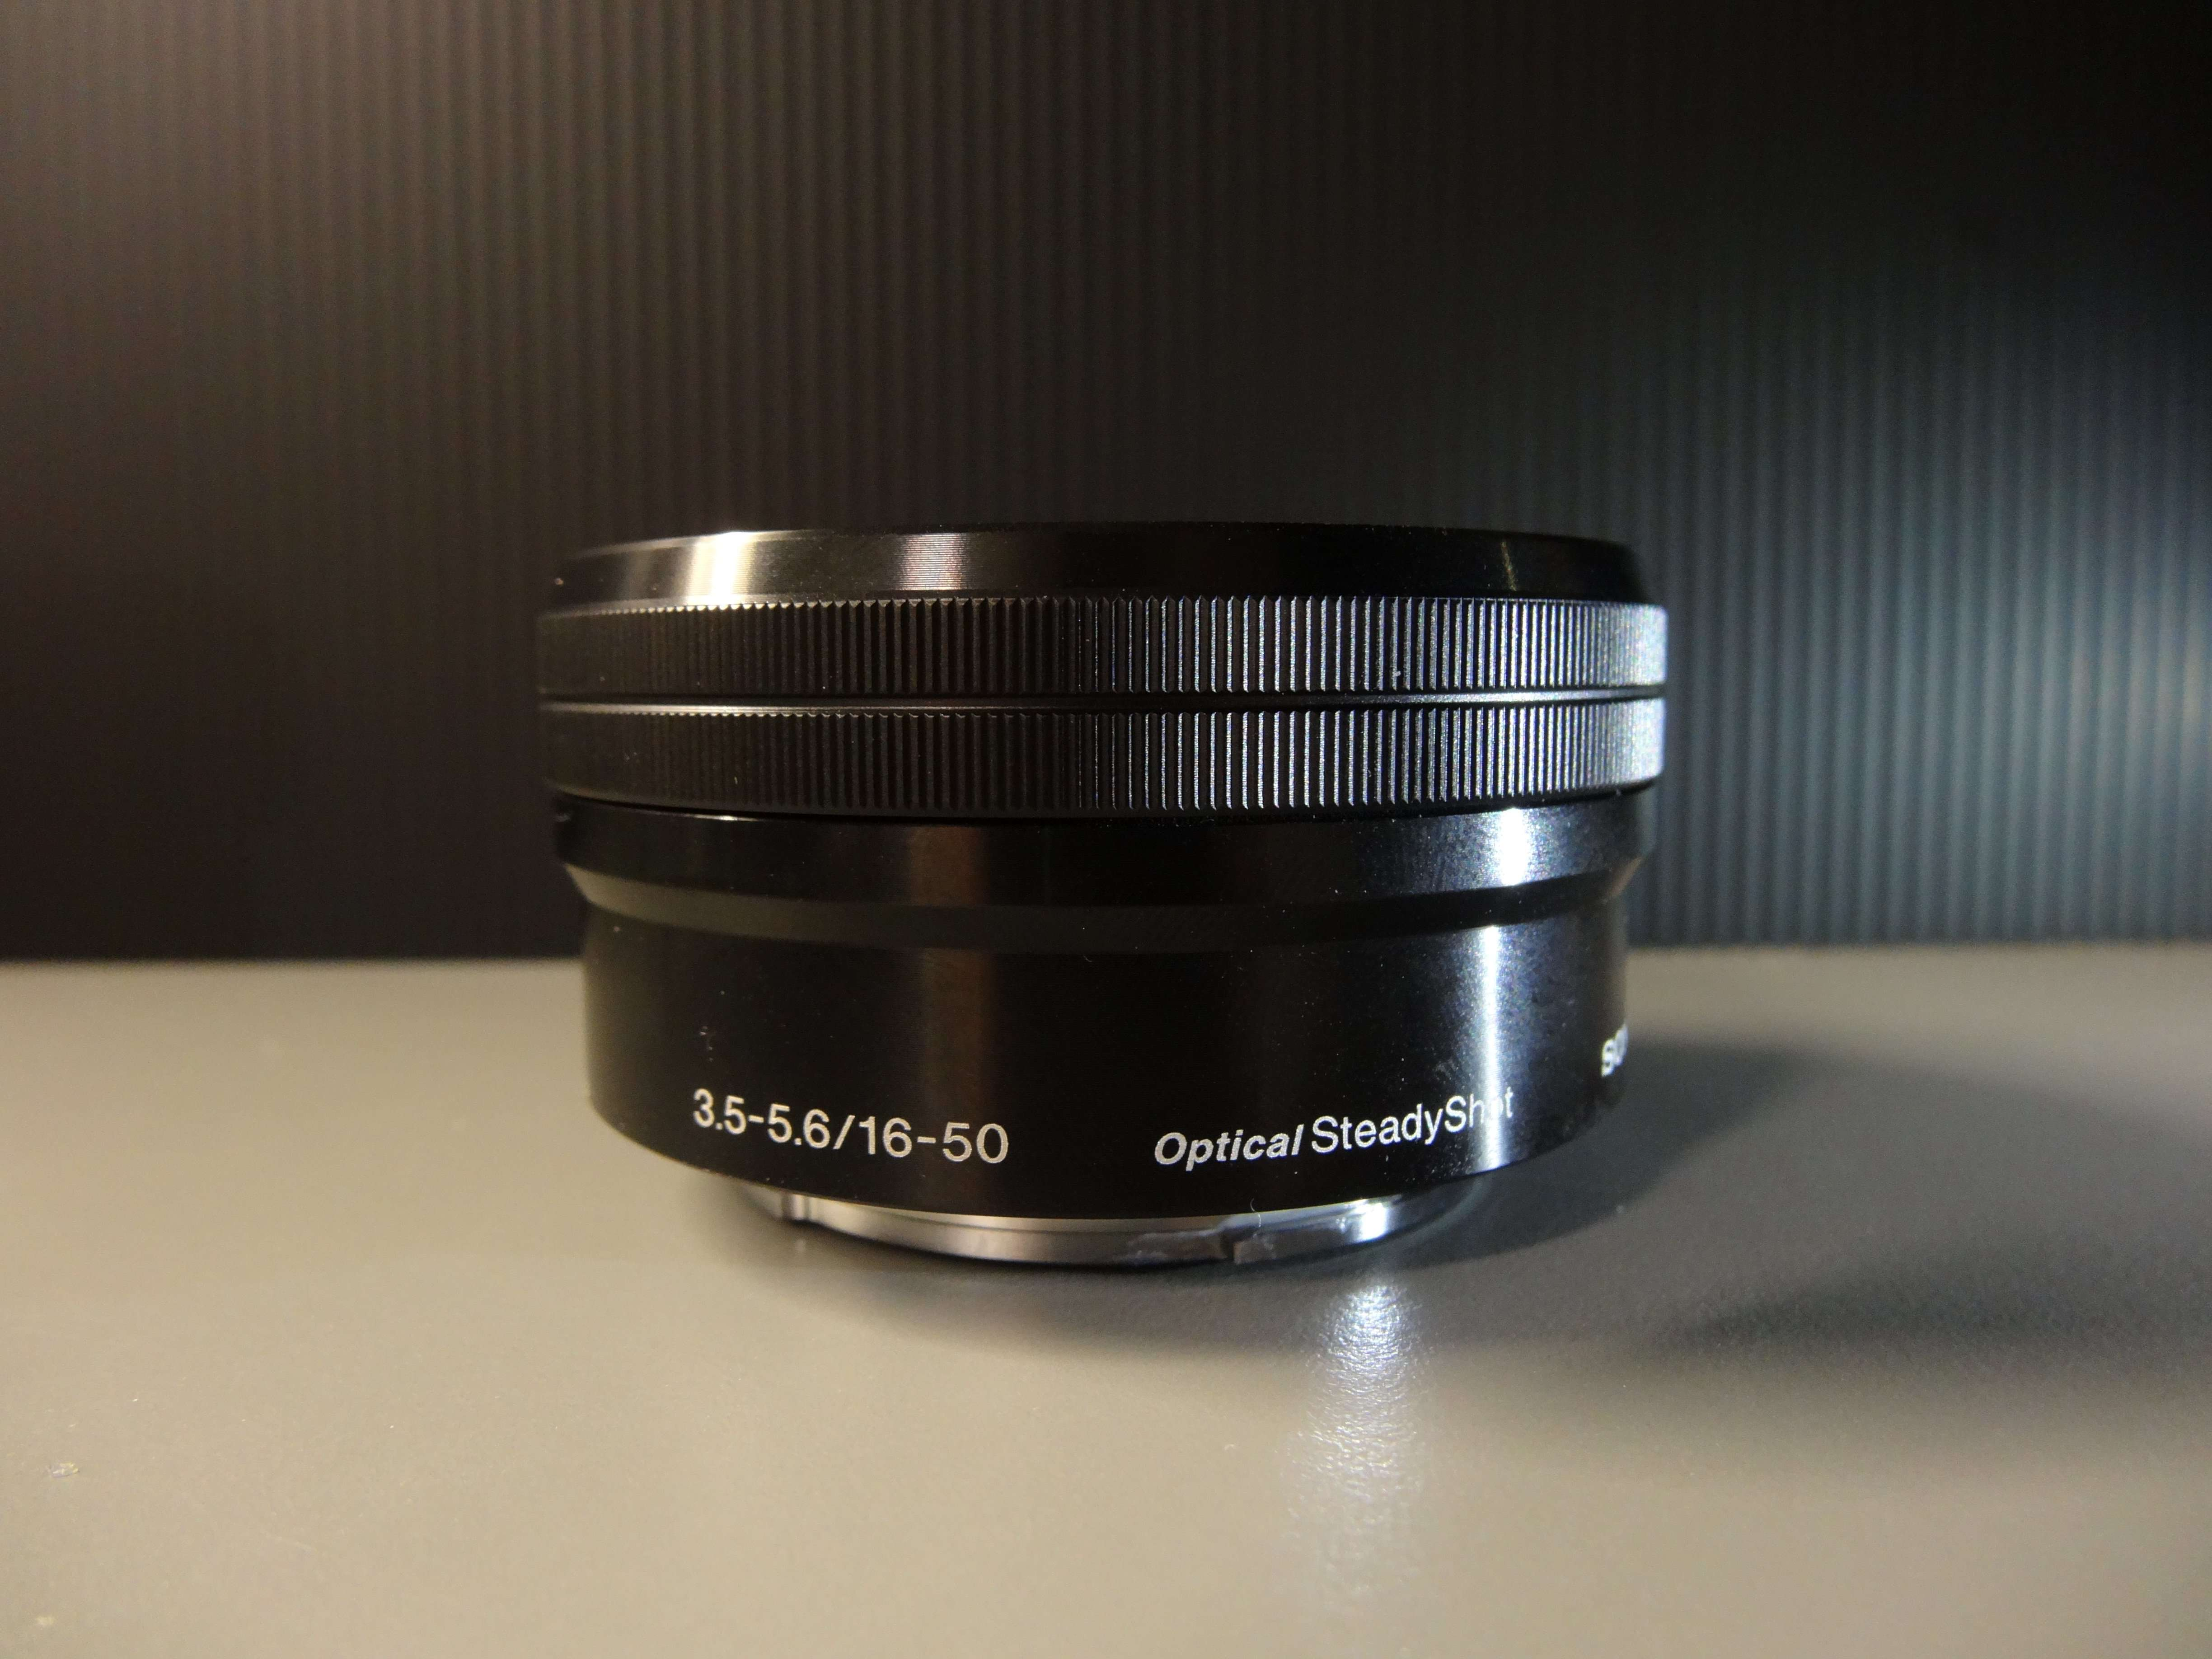 Zoom Lens with Image Stabilizer (Optical Steady Shot)